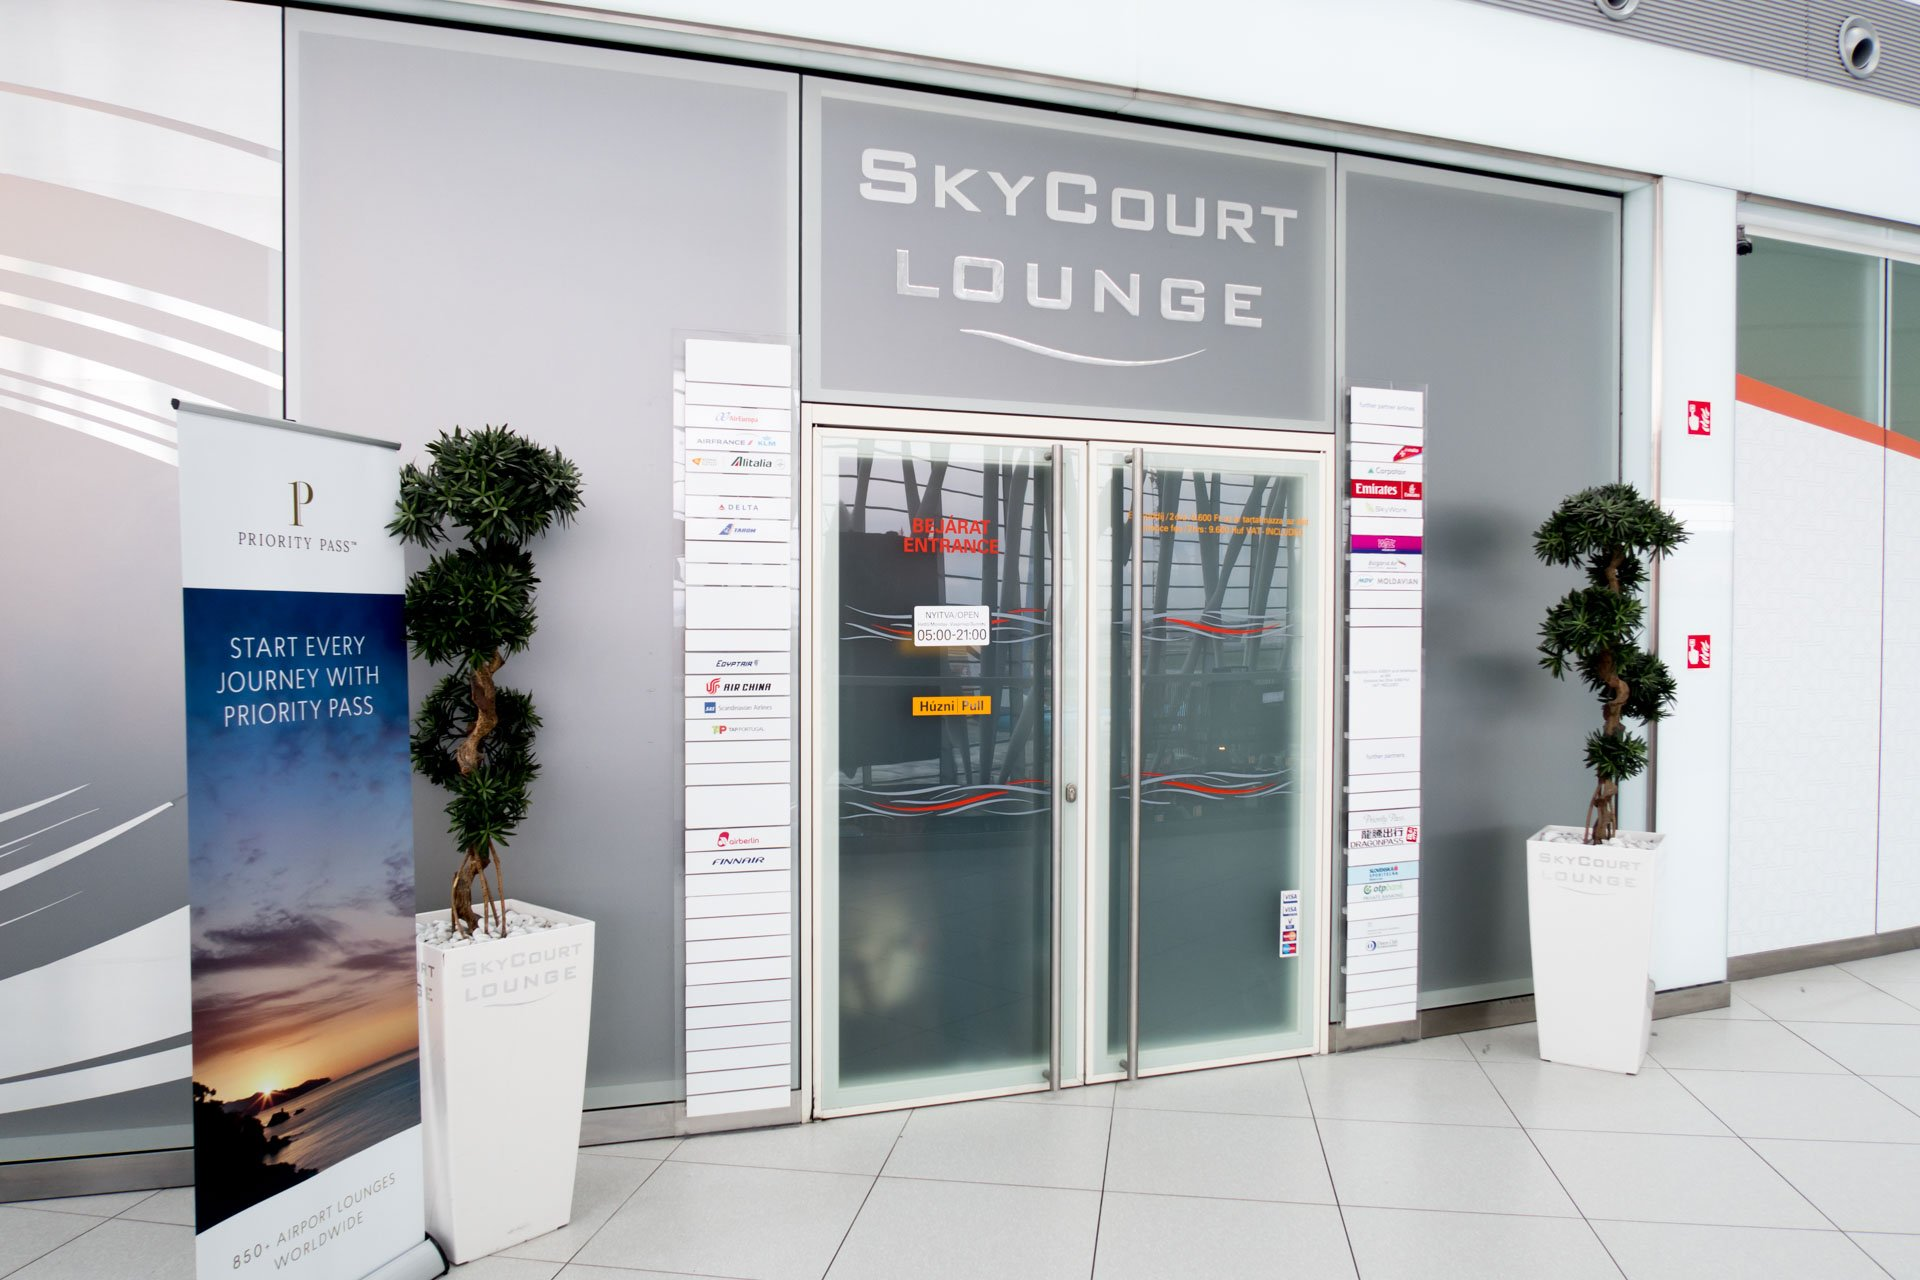 Sky Court Lounge Entrance